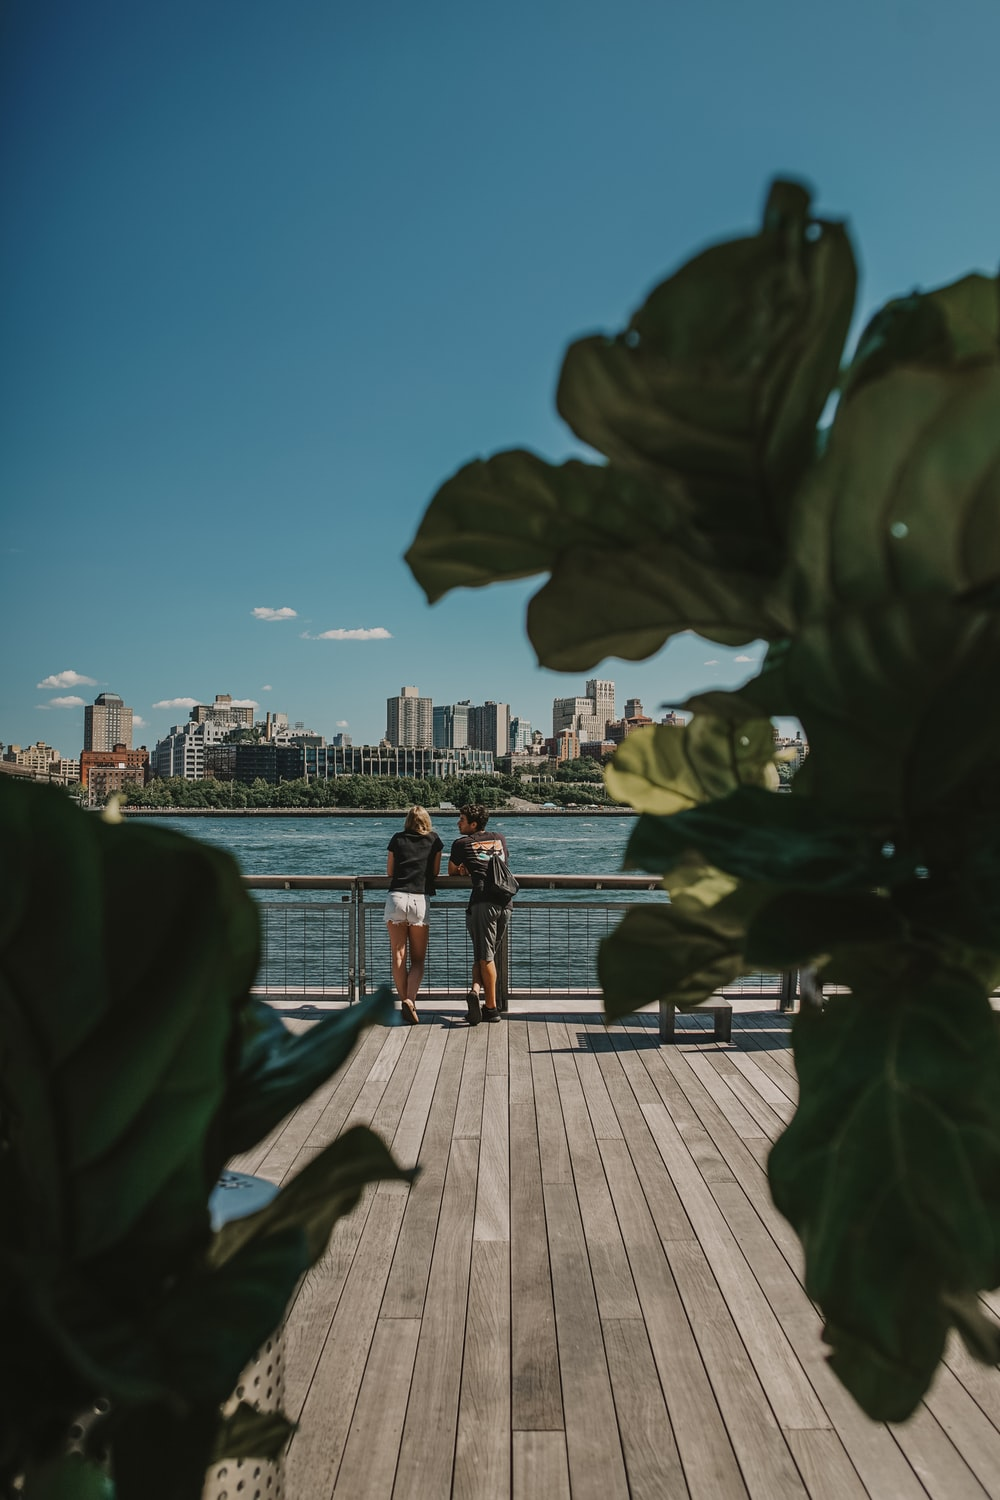 couple standing near railings and body of water